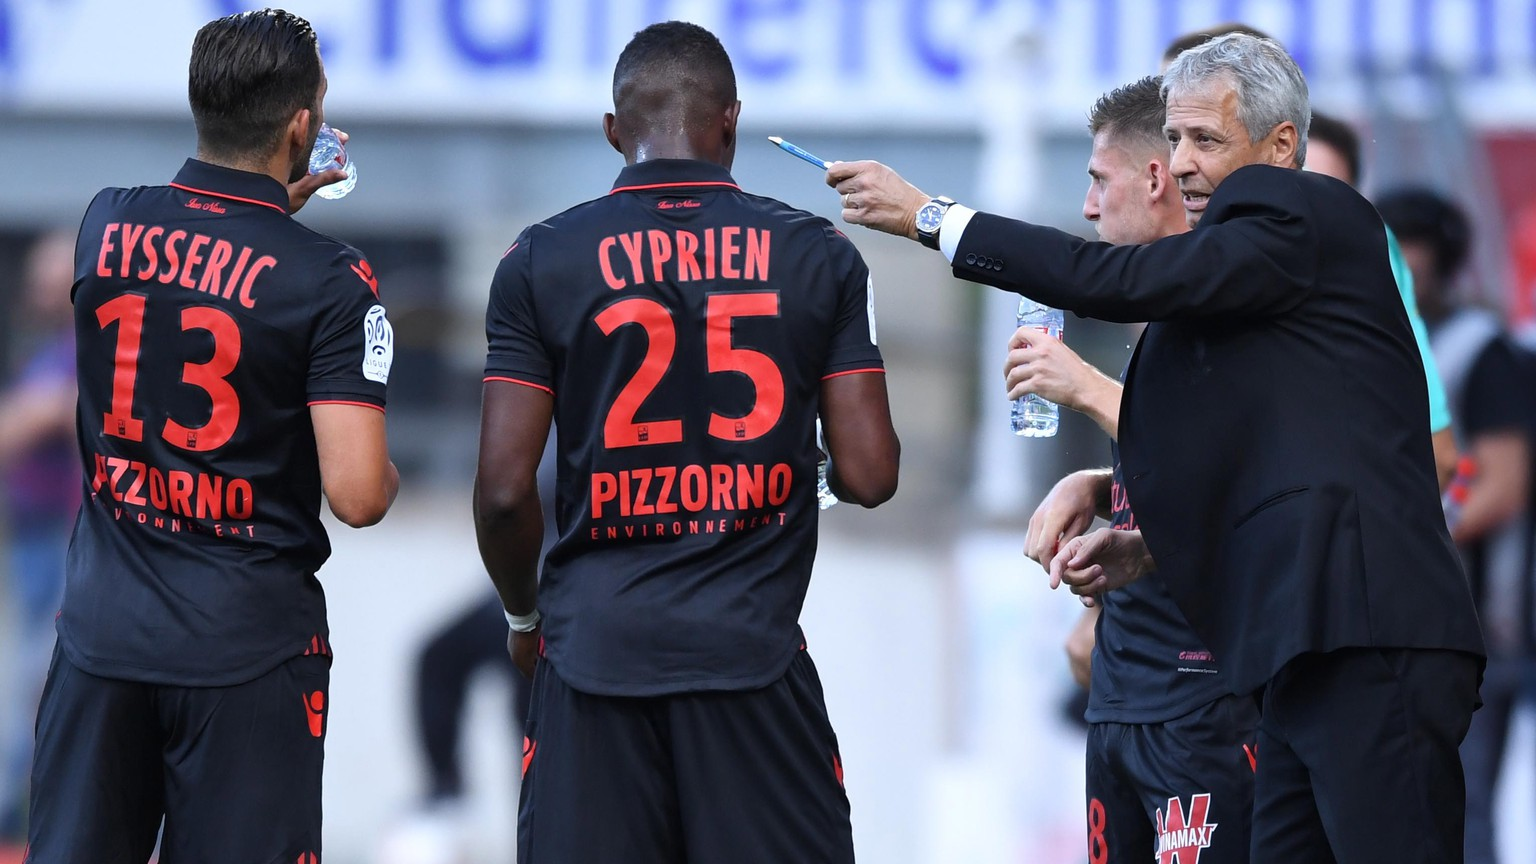 25.09.2016; Nacy; Fussball Ligue 1 - OGC Nice - AS Nancy ; Trainer Lucien Favre (Nice)